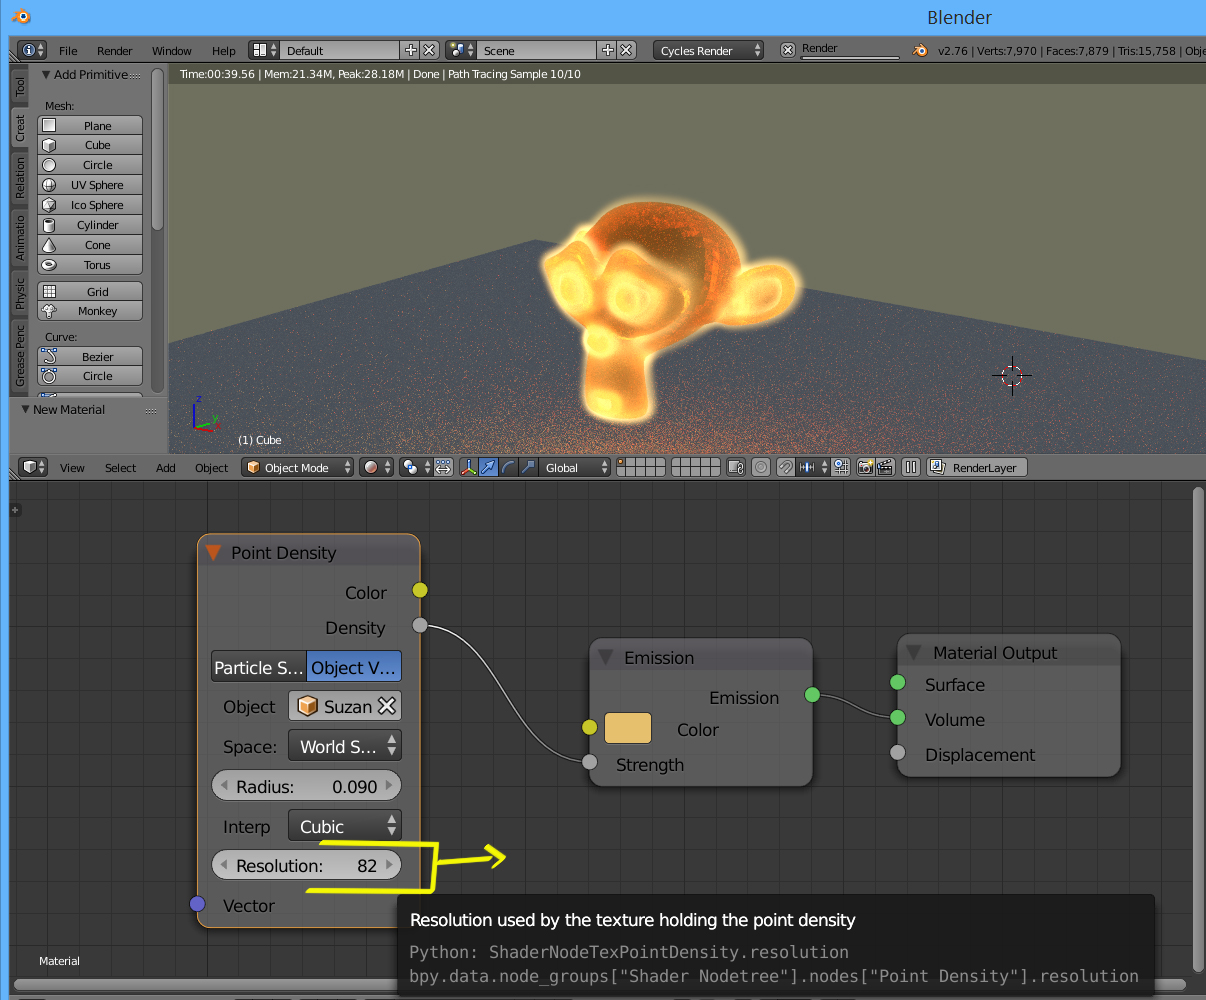 Blender 2.76 :: Release y avances-resolucion.jpg